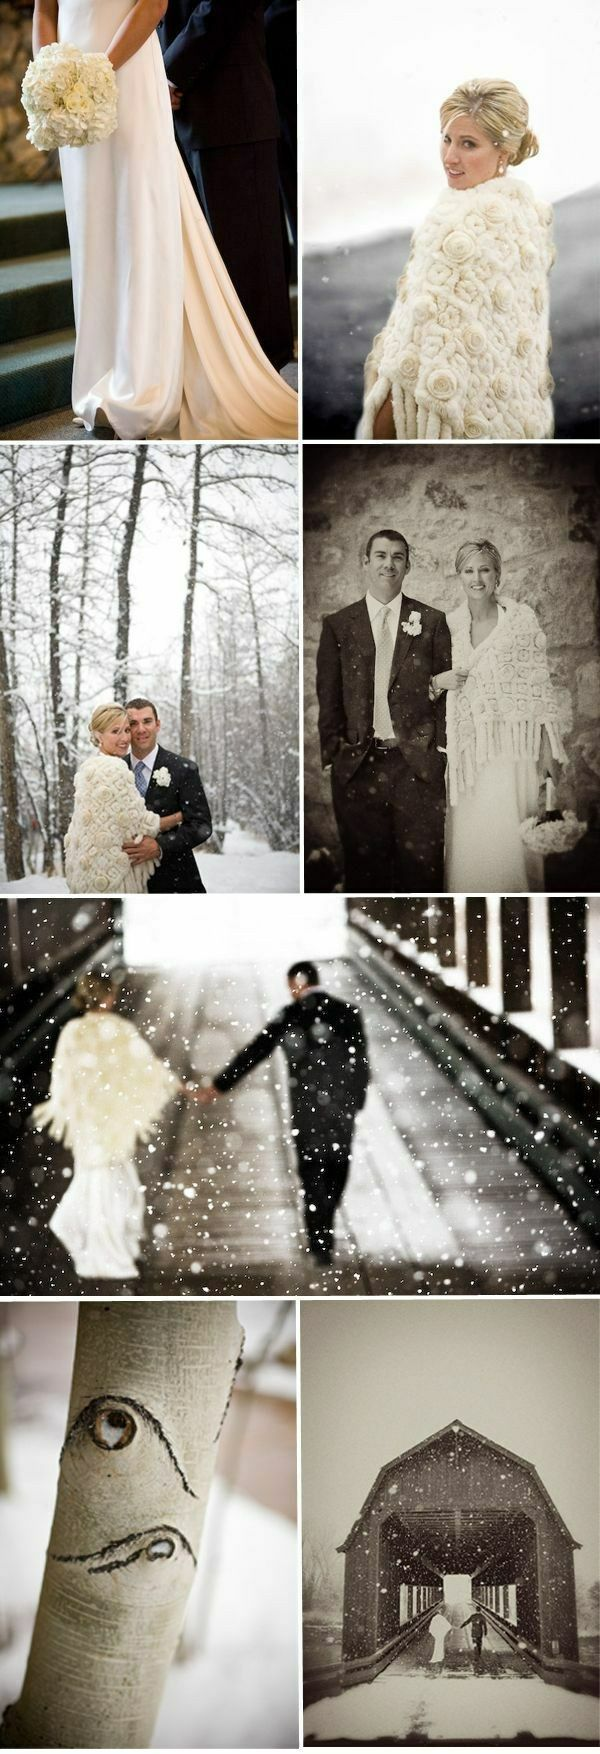 A winter shawl is a must have when you get married in the snow!